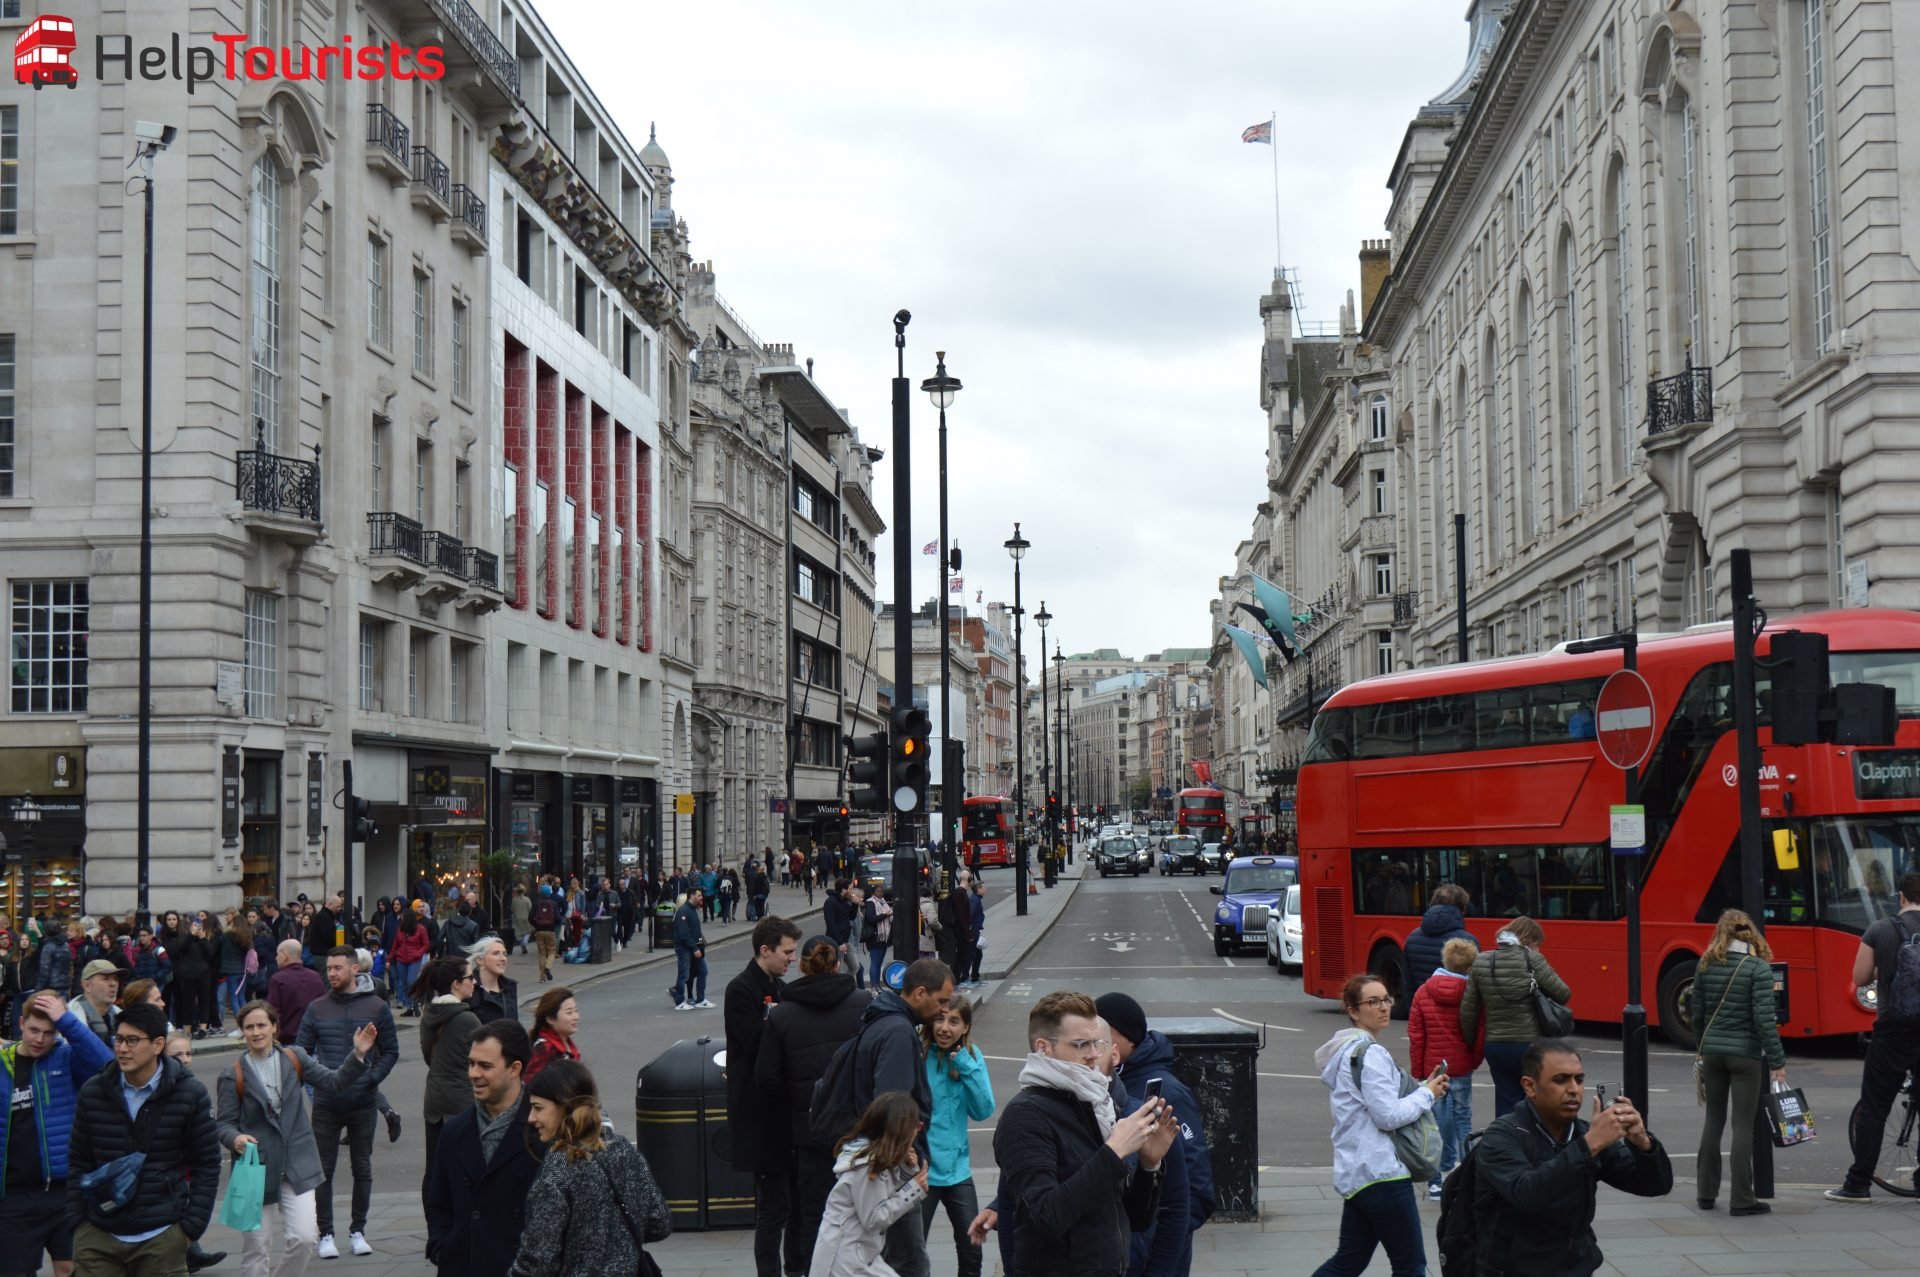 Piccadilly Circus Regent's Street London